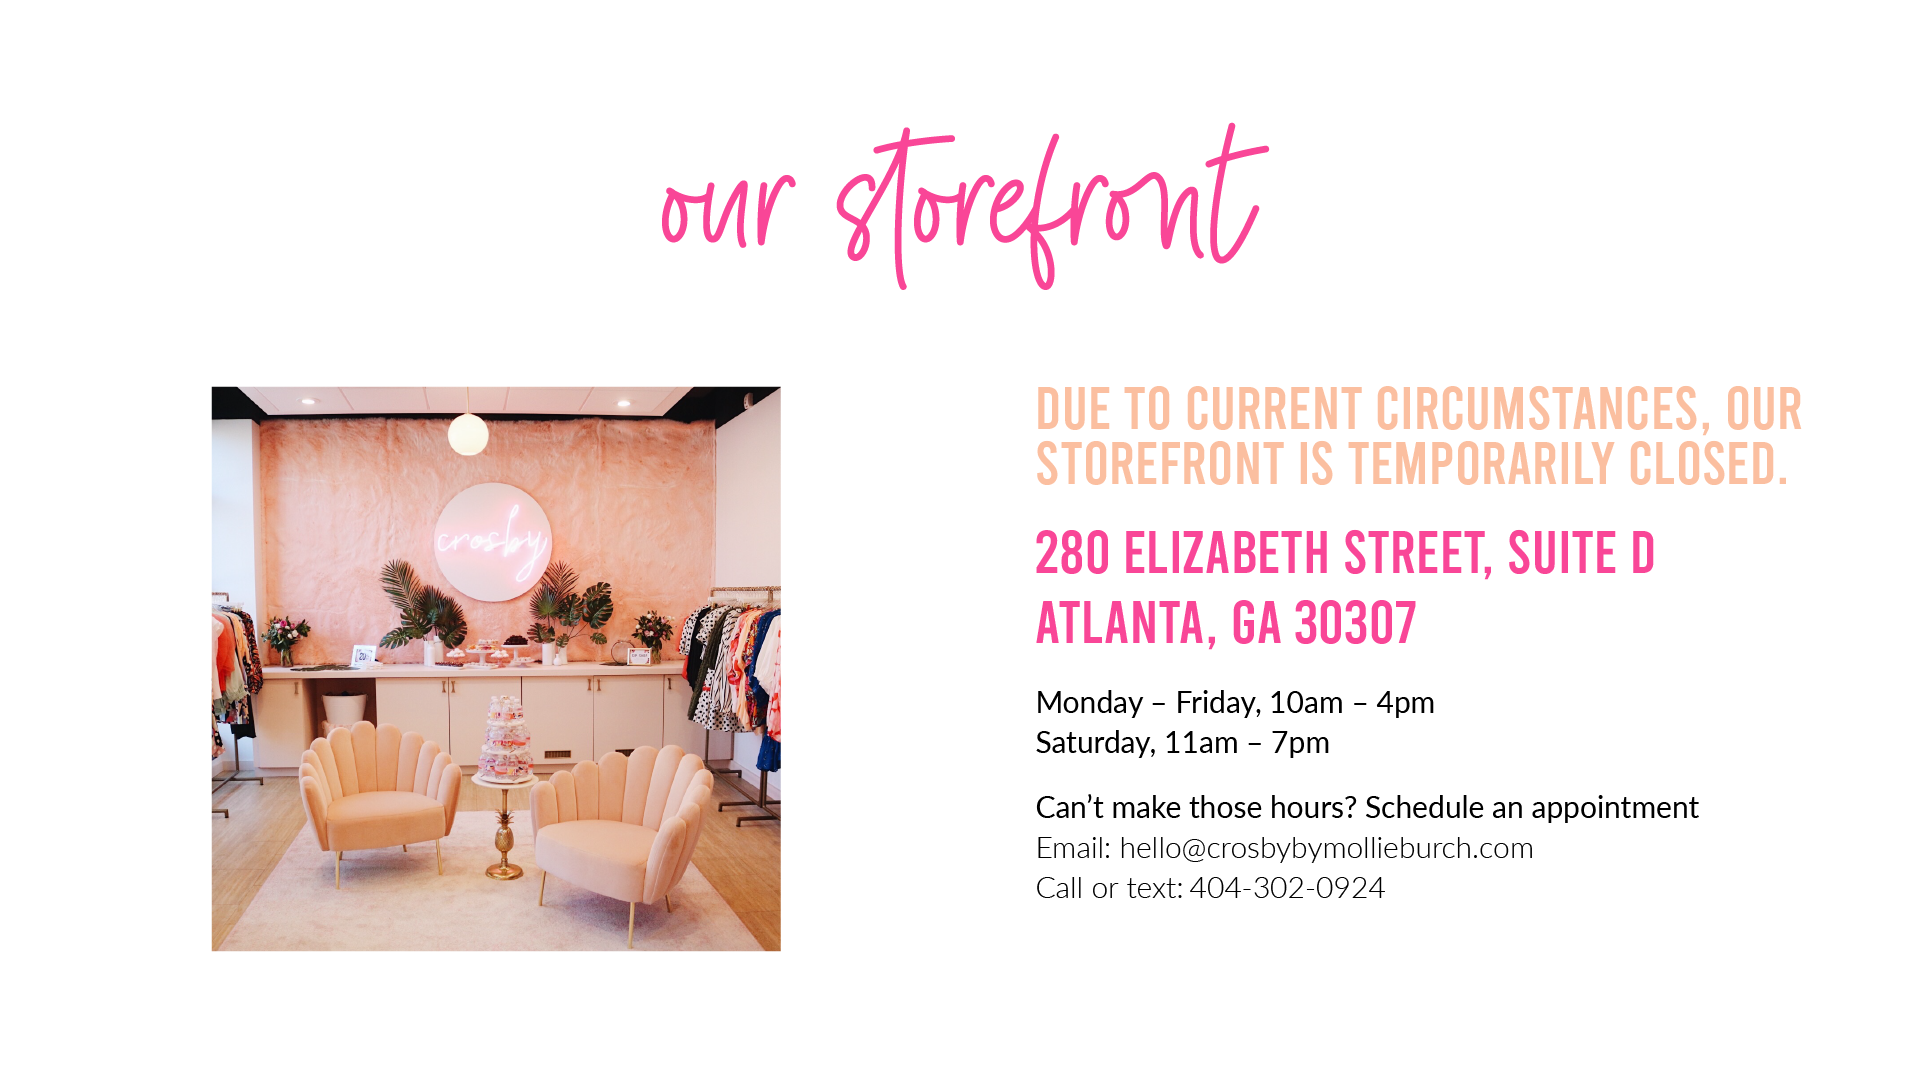 Our Storefront: Due to current circumstances, our storefront is temporarily closed. 280 Elizabeth Street, Suite D Atlanta, GA 30307 Monday – Friday, 10am – 4pm Saturday, 11am – 7pm Can't make those hours? Schedule an appointment  Email: hello@crosbybymollieburch.com  Call or text: 404-302-0924